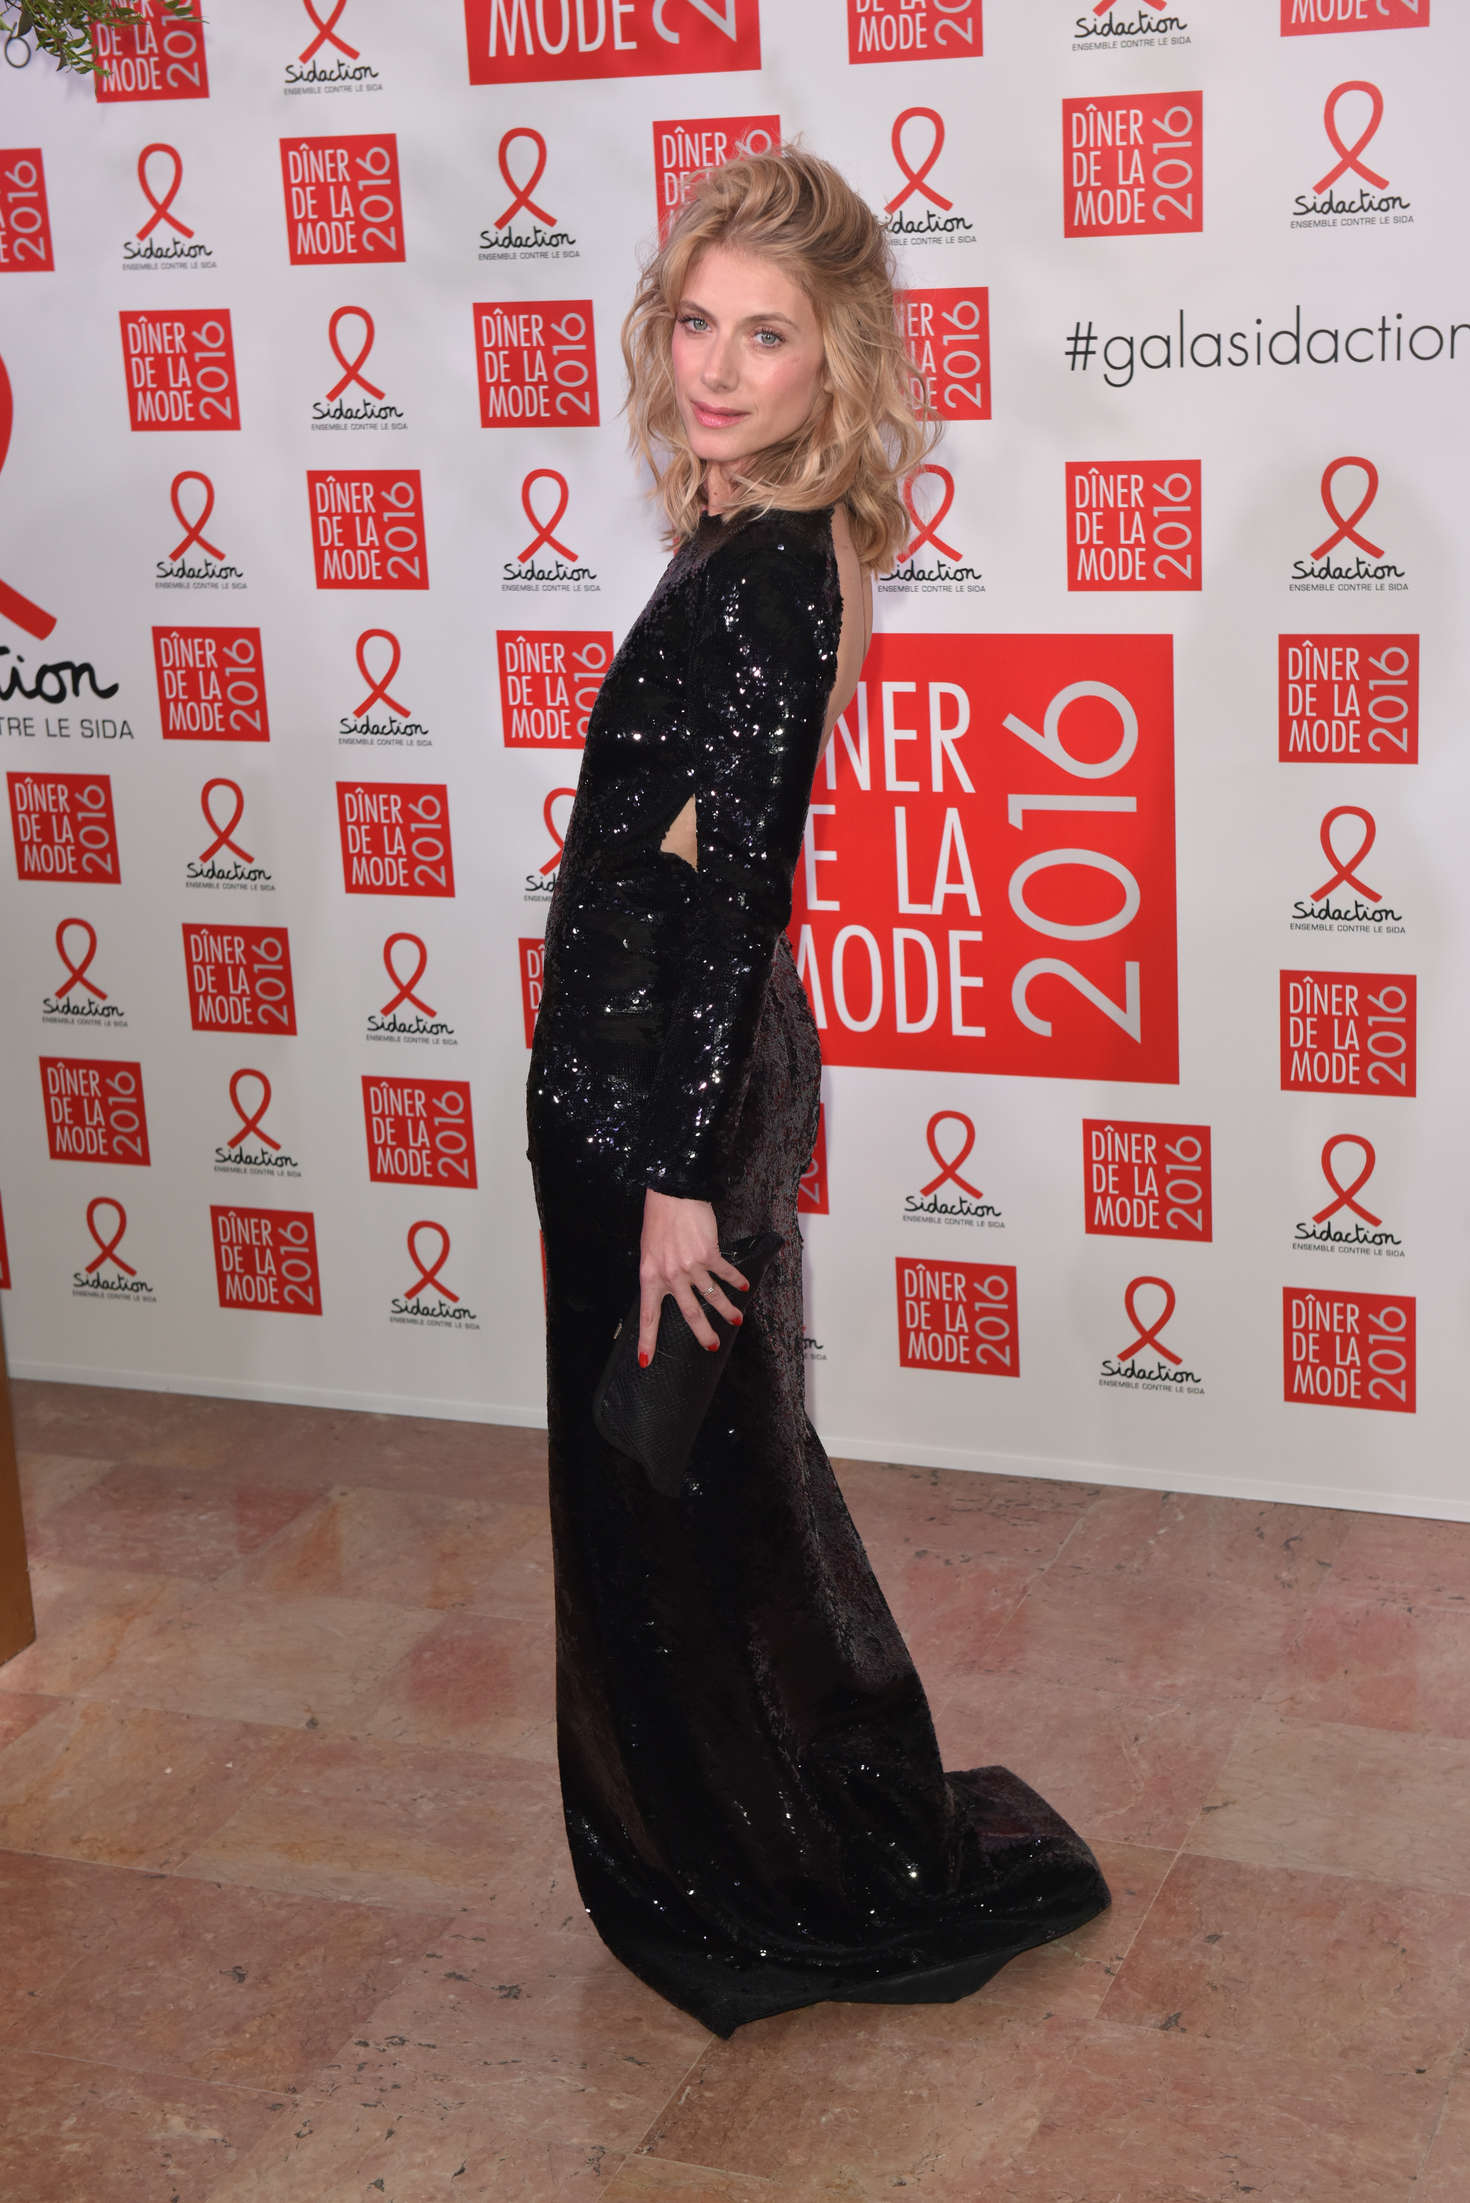 Melanie Laurent 2016 : Melanie Laurent: Sidaction Gala Dinner 2016 -02